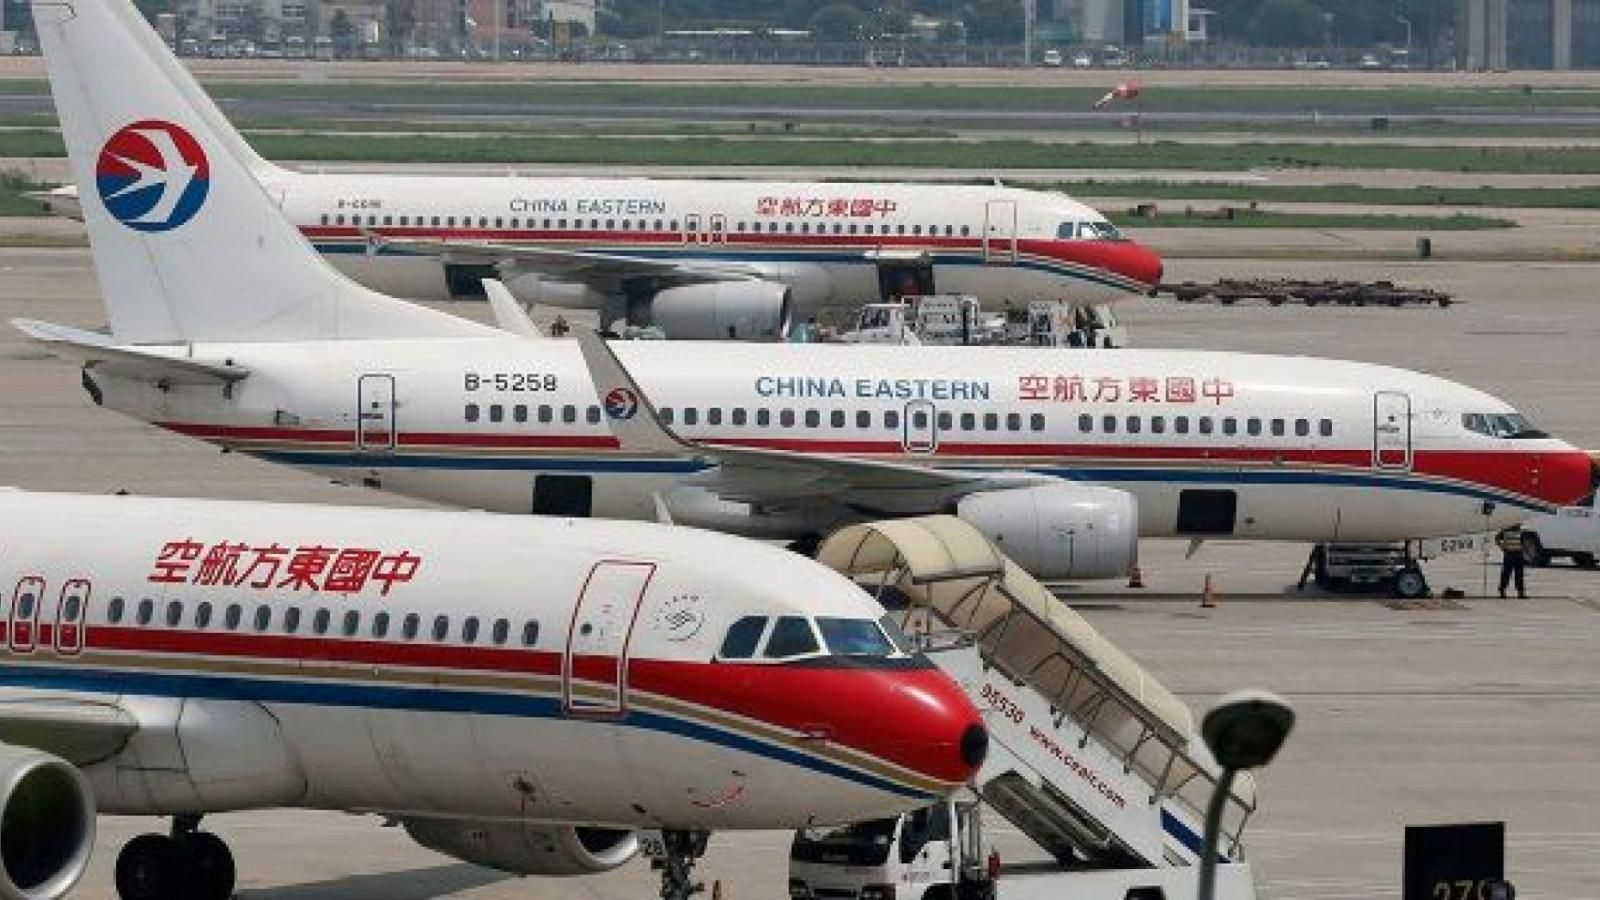 3-planes-of-the-China-Eastern-Airline